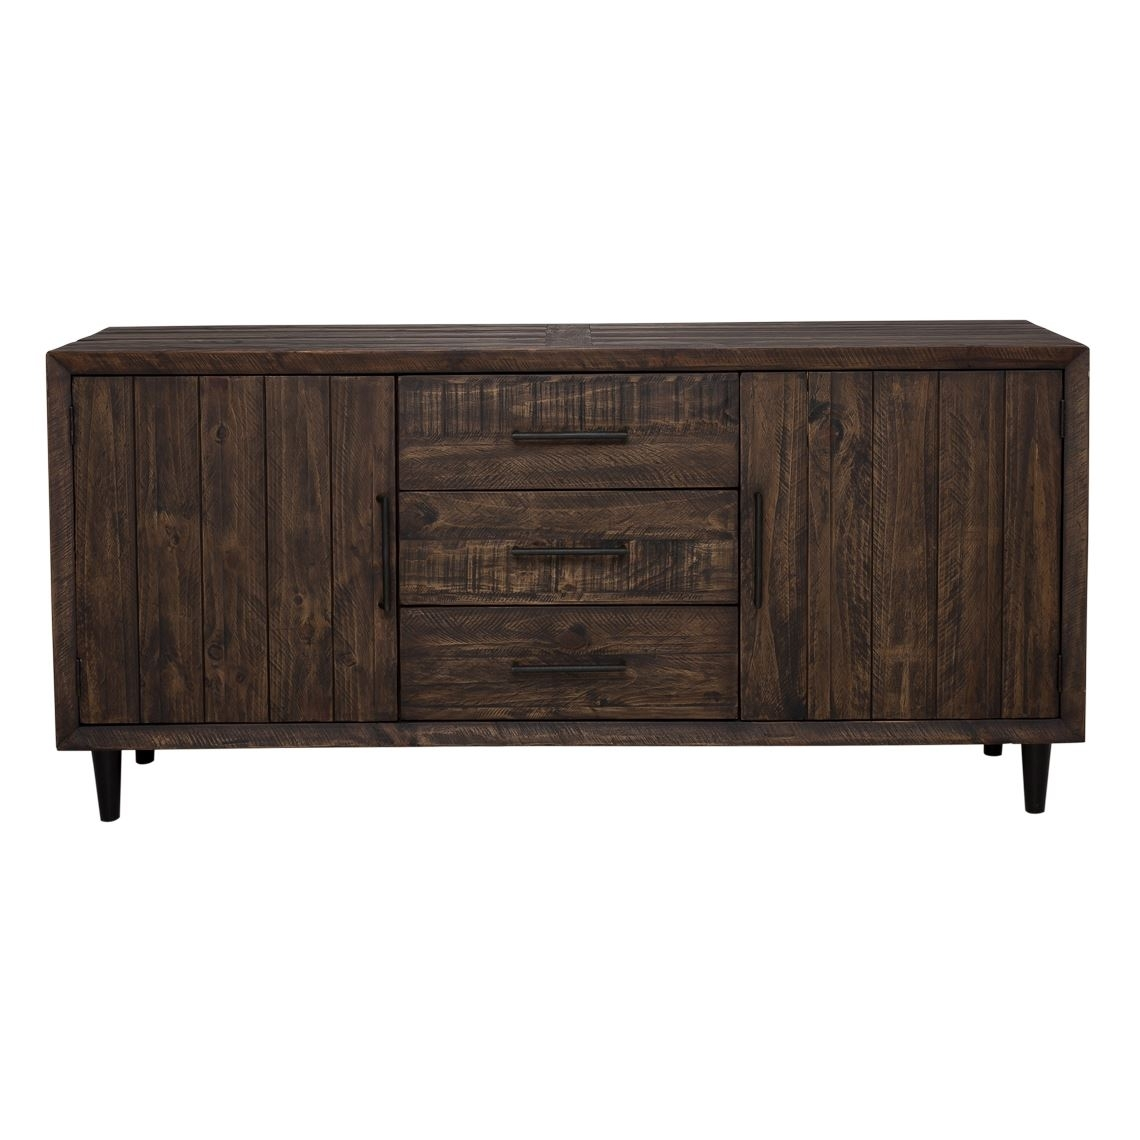 Freedom Furniture And Homewares Within Current 4 Door 3 Drawer White Wash Sideboards (#4 of 20)